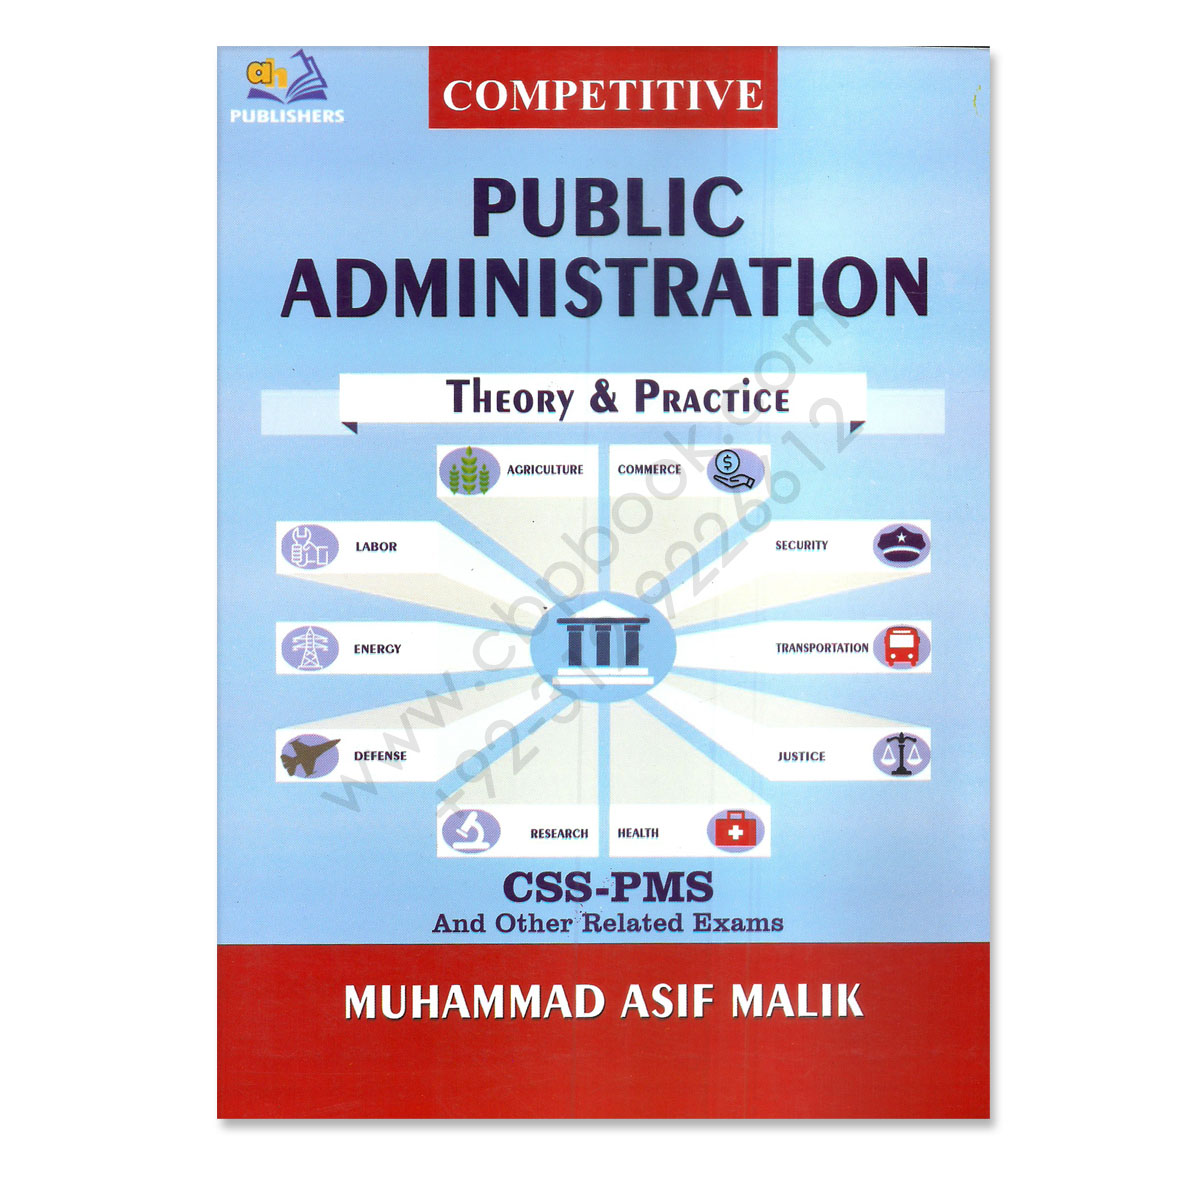 theory and practice in public administration [10410a] - public administration theory and practice public administration theory is the amalgamation of history organizational theory social theory political theory.